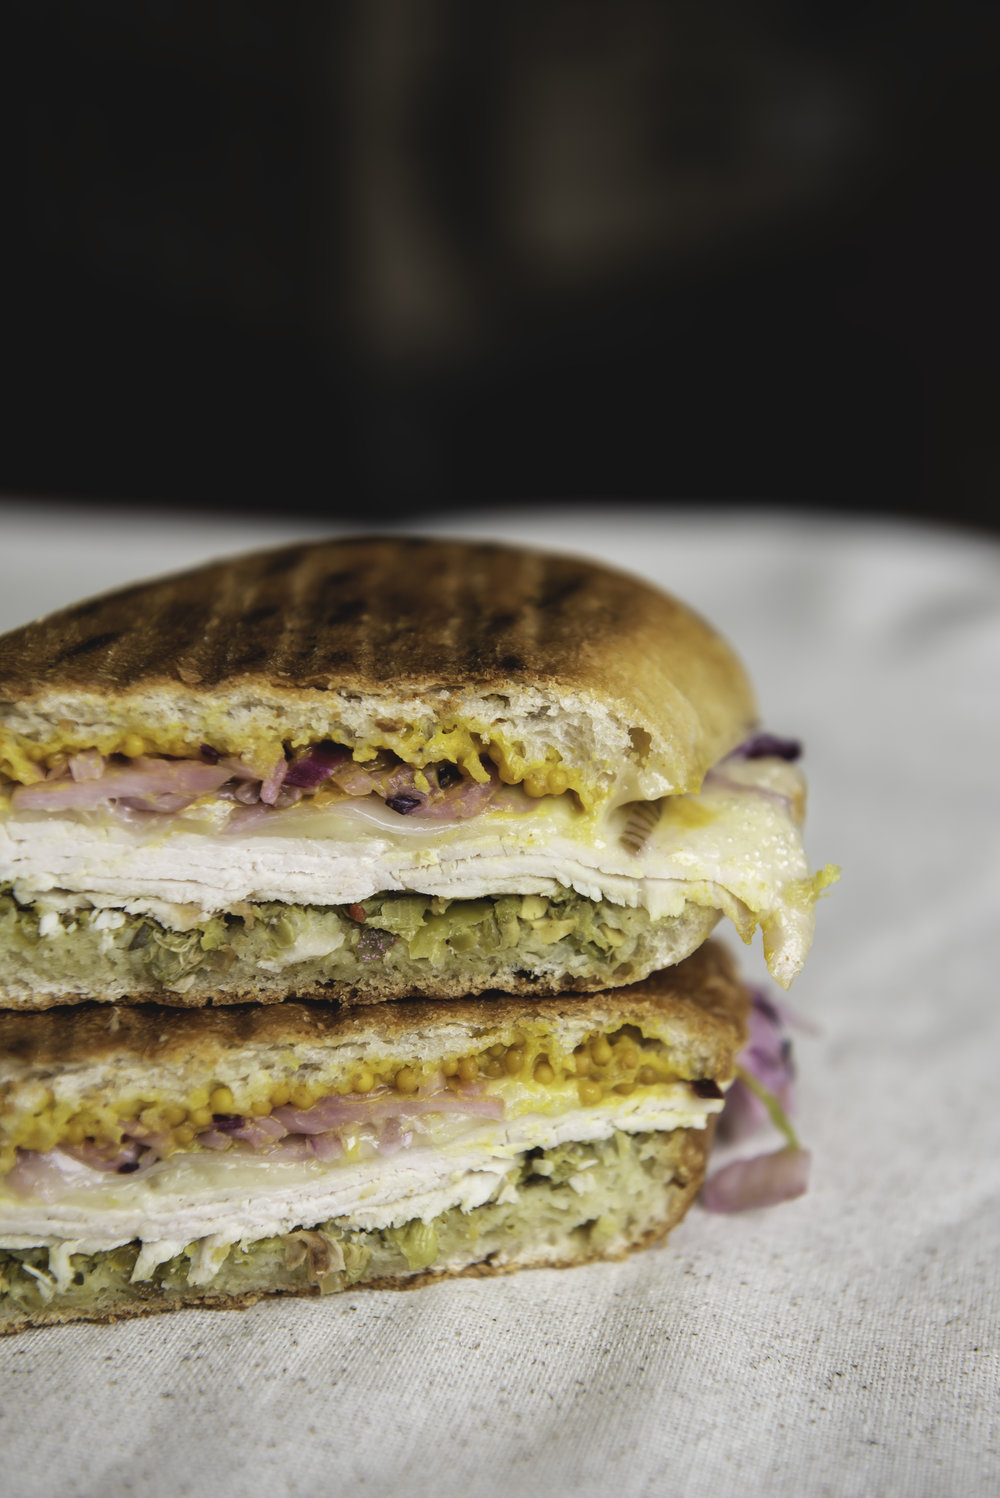 Turkey Cubano Style - Turkey, Adirondack cheddar, pickled mustard seed sauce, coleslaw, pickled relish, on pressed organic ciabatta